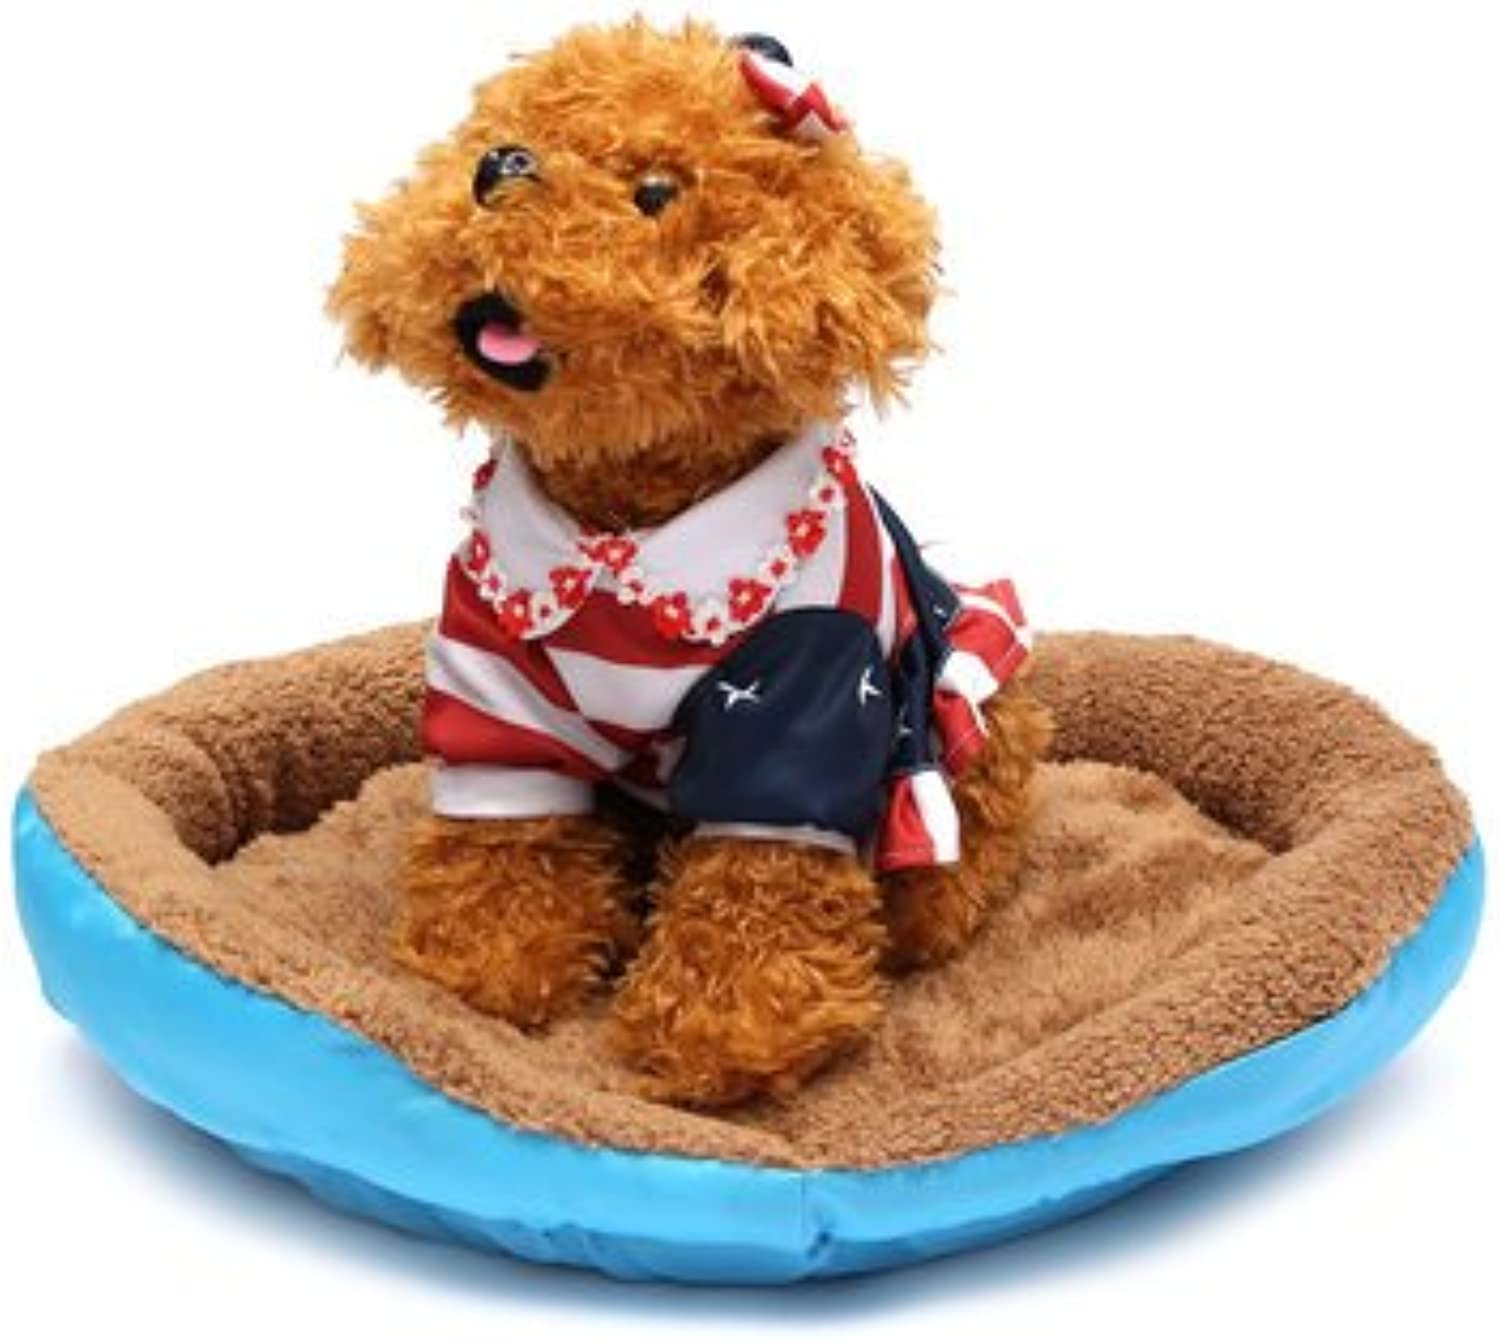 Plush Dog Bed  Pet Bed Plush  Warm Pet Dog Cat Bed Nest Puppy Cozy Plush Cushion House Soft Warm Kennel Mat Blanket  bluee L (Cat Bed Plush)